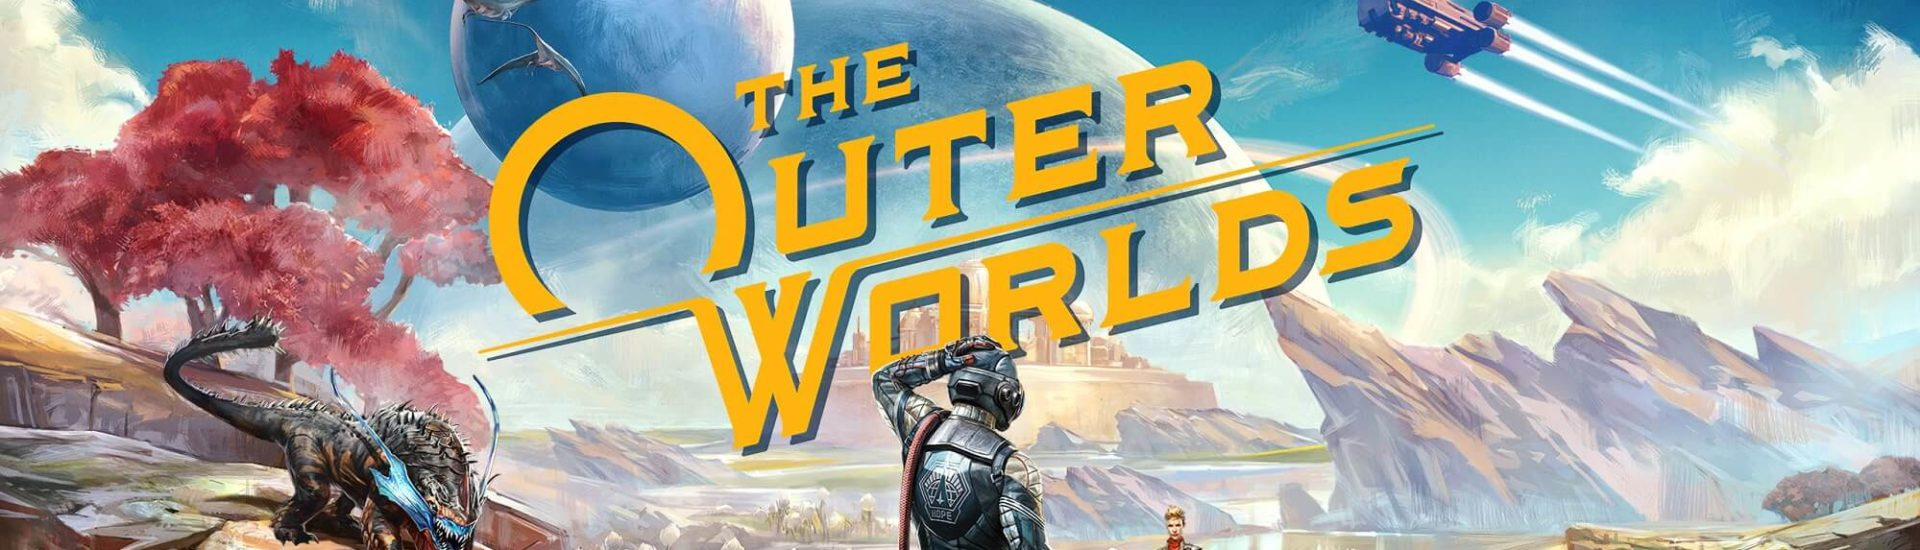 The Outer Worlds: Singleplayer-Alternative für Fallout-Fans bald auf Steam erhältlich